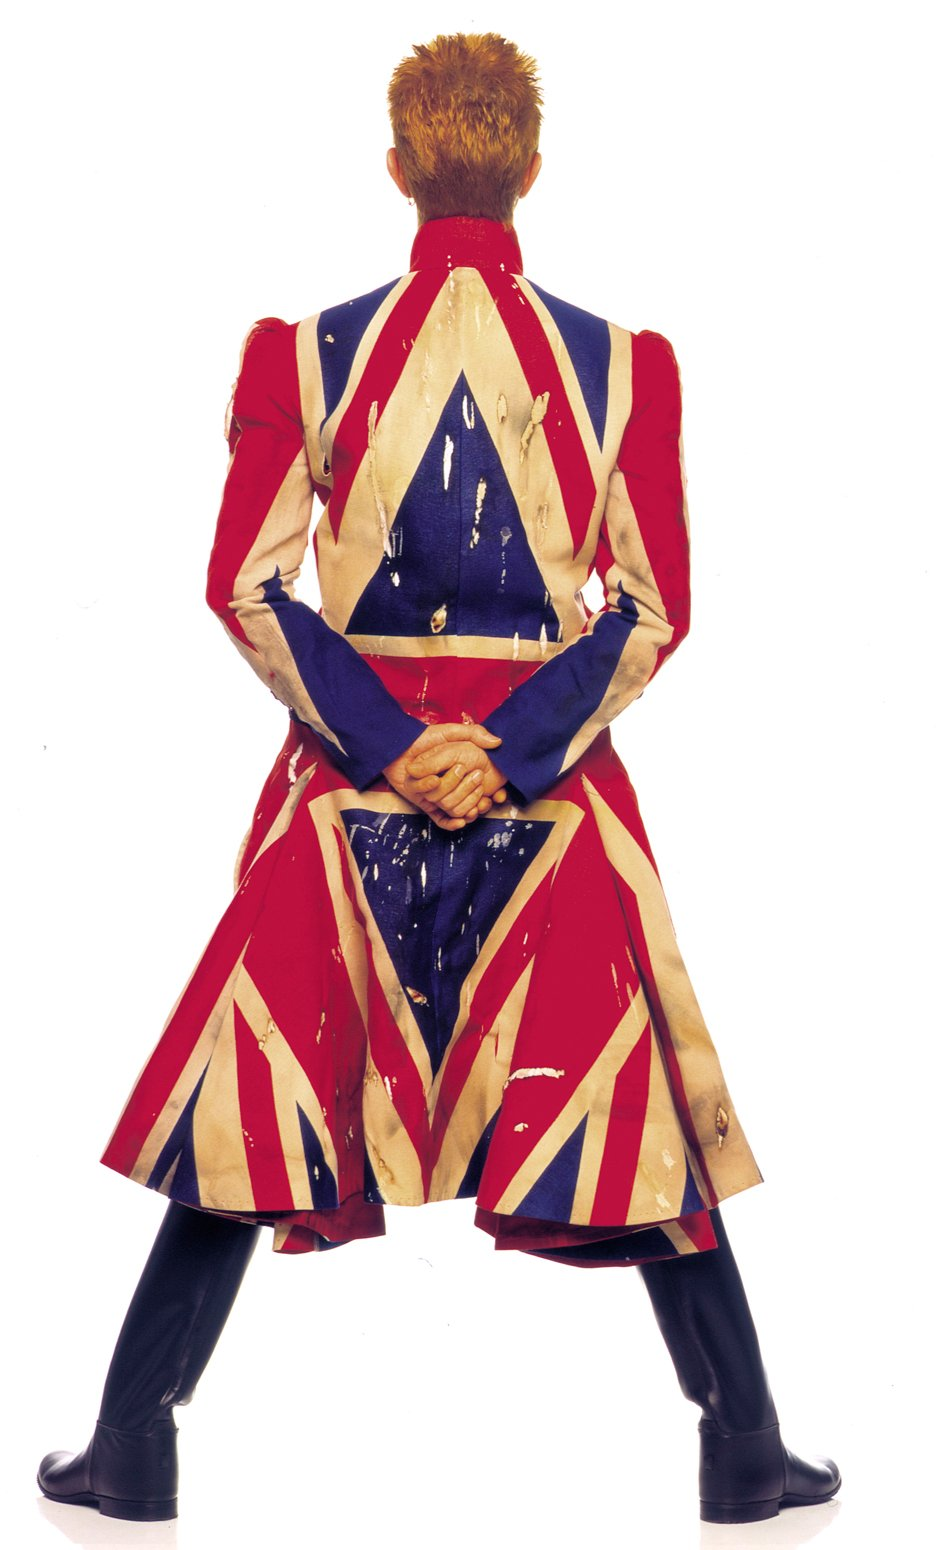 David Bowie Union Jack coat by Alexander McQueen